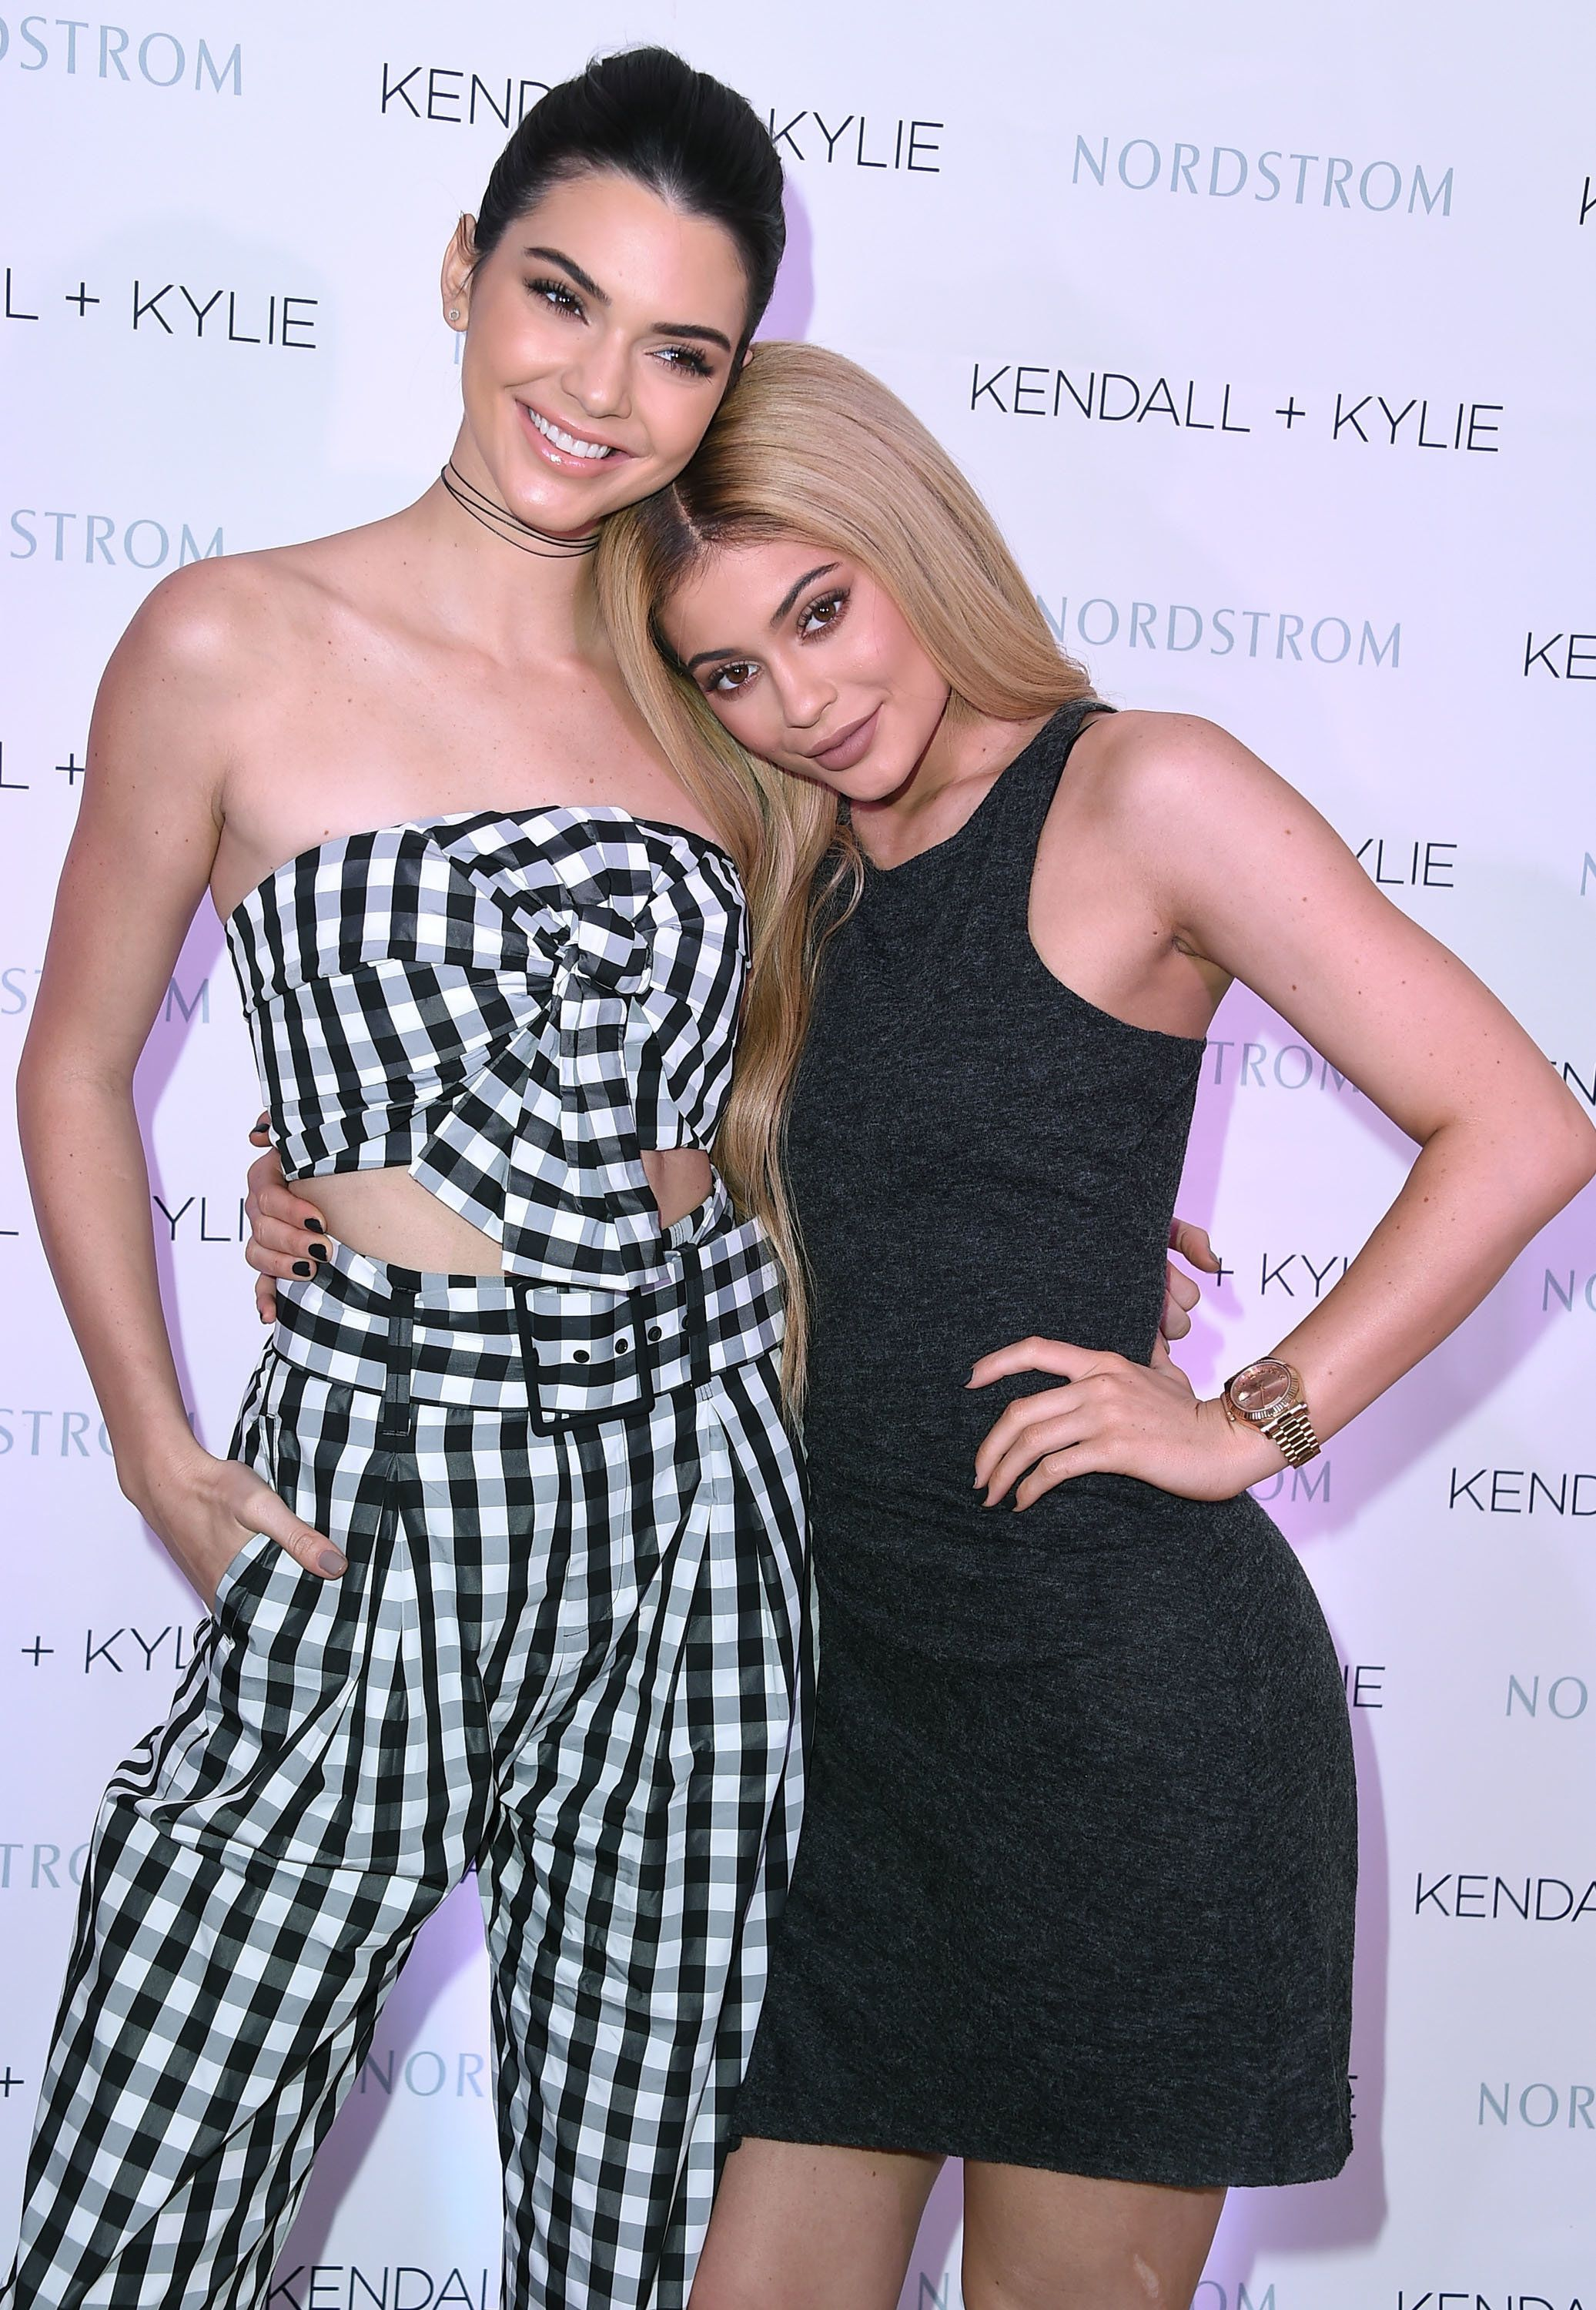 Kendall and Kylie Jenner celebrate Kendall + Kylie Collection at Chateau Marmont on March 24, 2016, in...